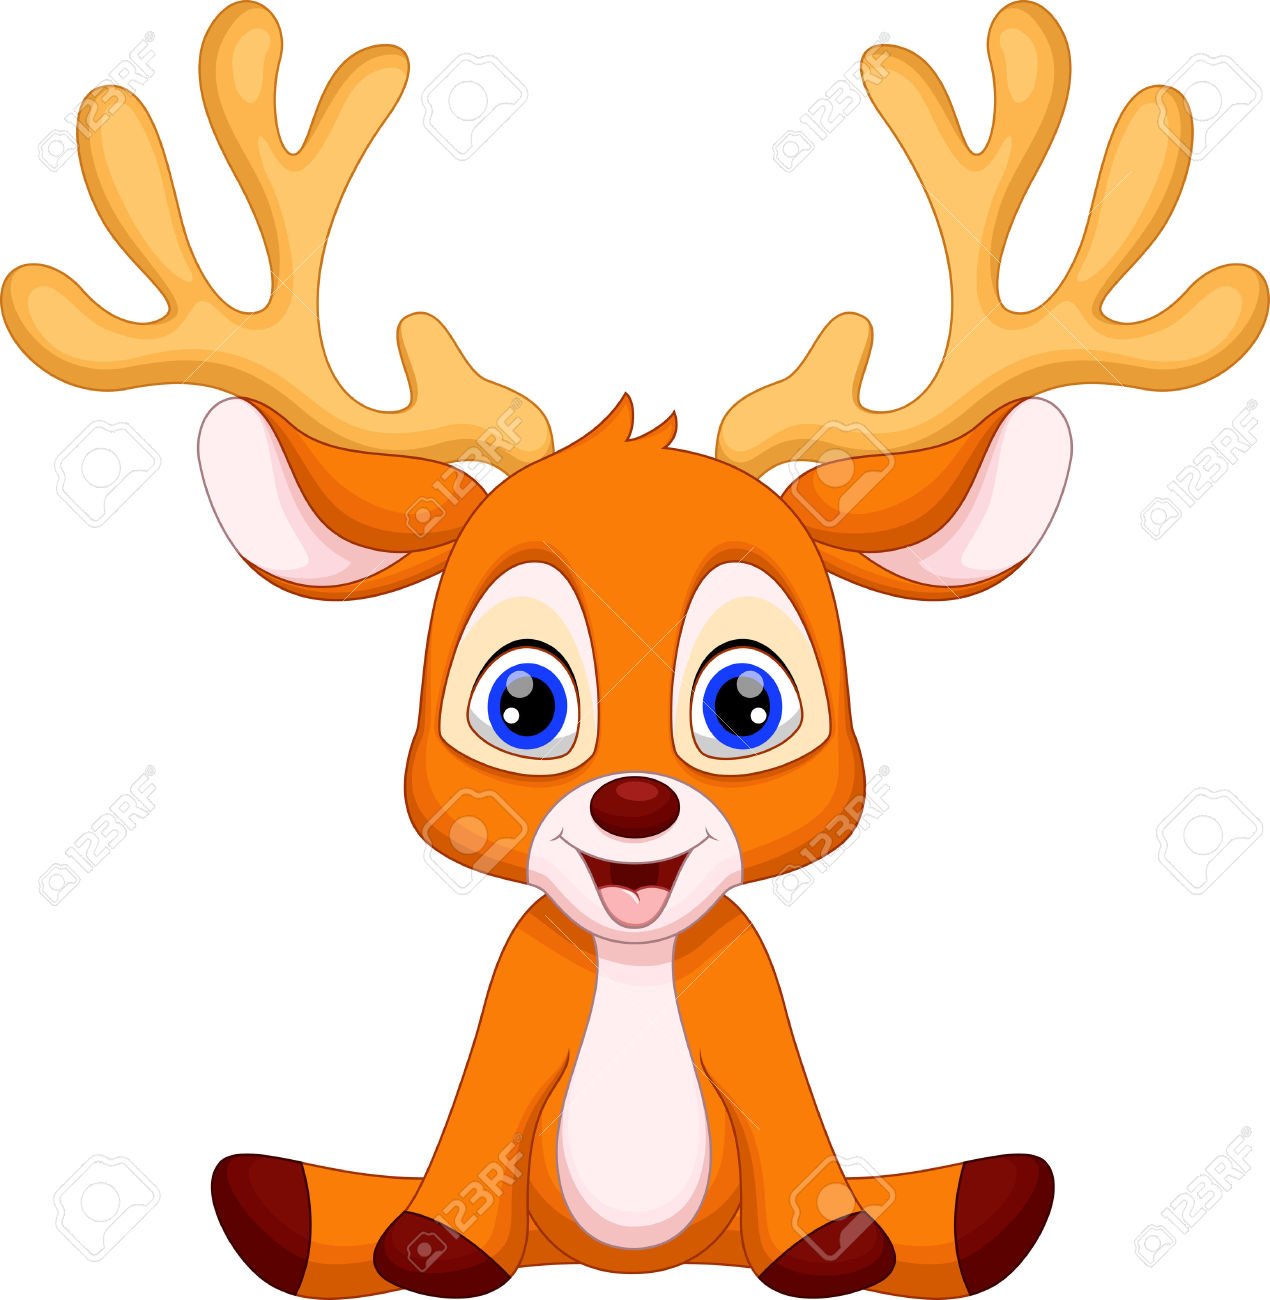 Baby Deer Clipart | Free download best Baby Deer Clipart on ... clip art free library